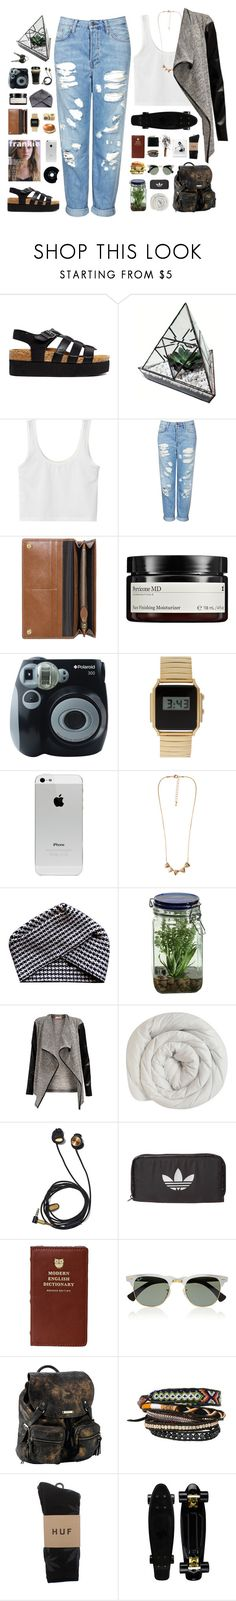 """""""Mrs. High"""" by shaniaayr ❤ liked on Polyvore featuring Truffle, Topshop, CHESTERFIELD, Mulberry, Perricone MD, Polaroid, ASOS, Forever 21, Electronic Sheep and Alöe"""